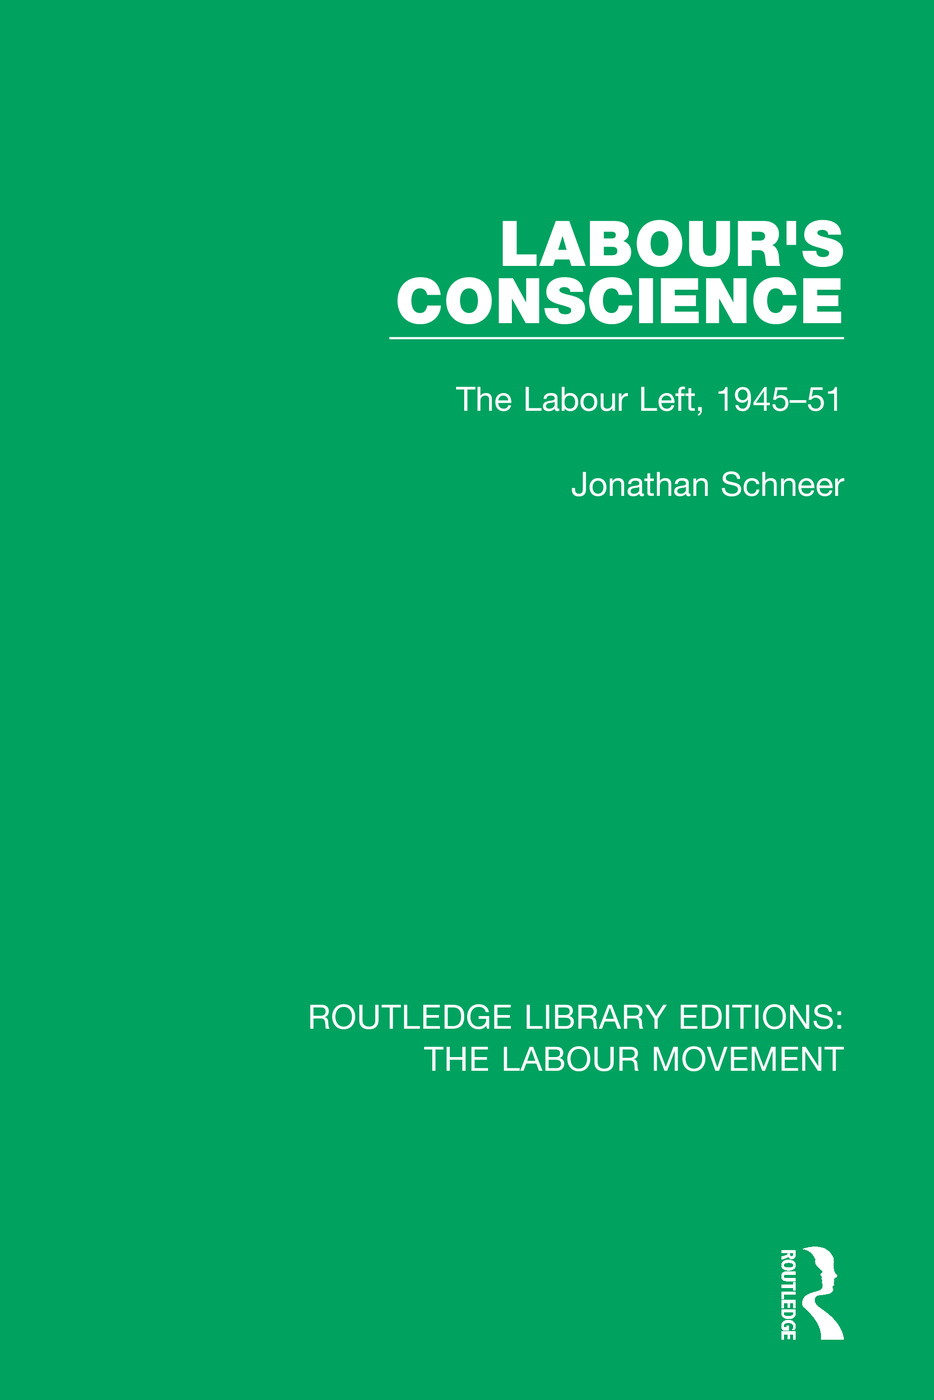 Labour's Conscience: The Labour Left, 1945-51 book cover